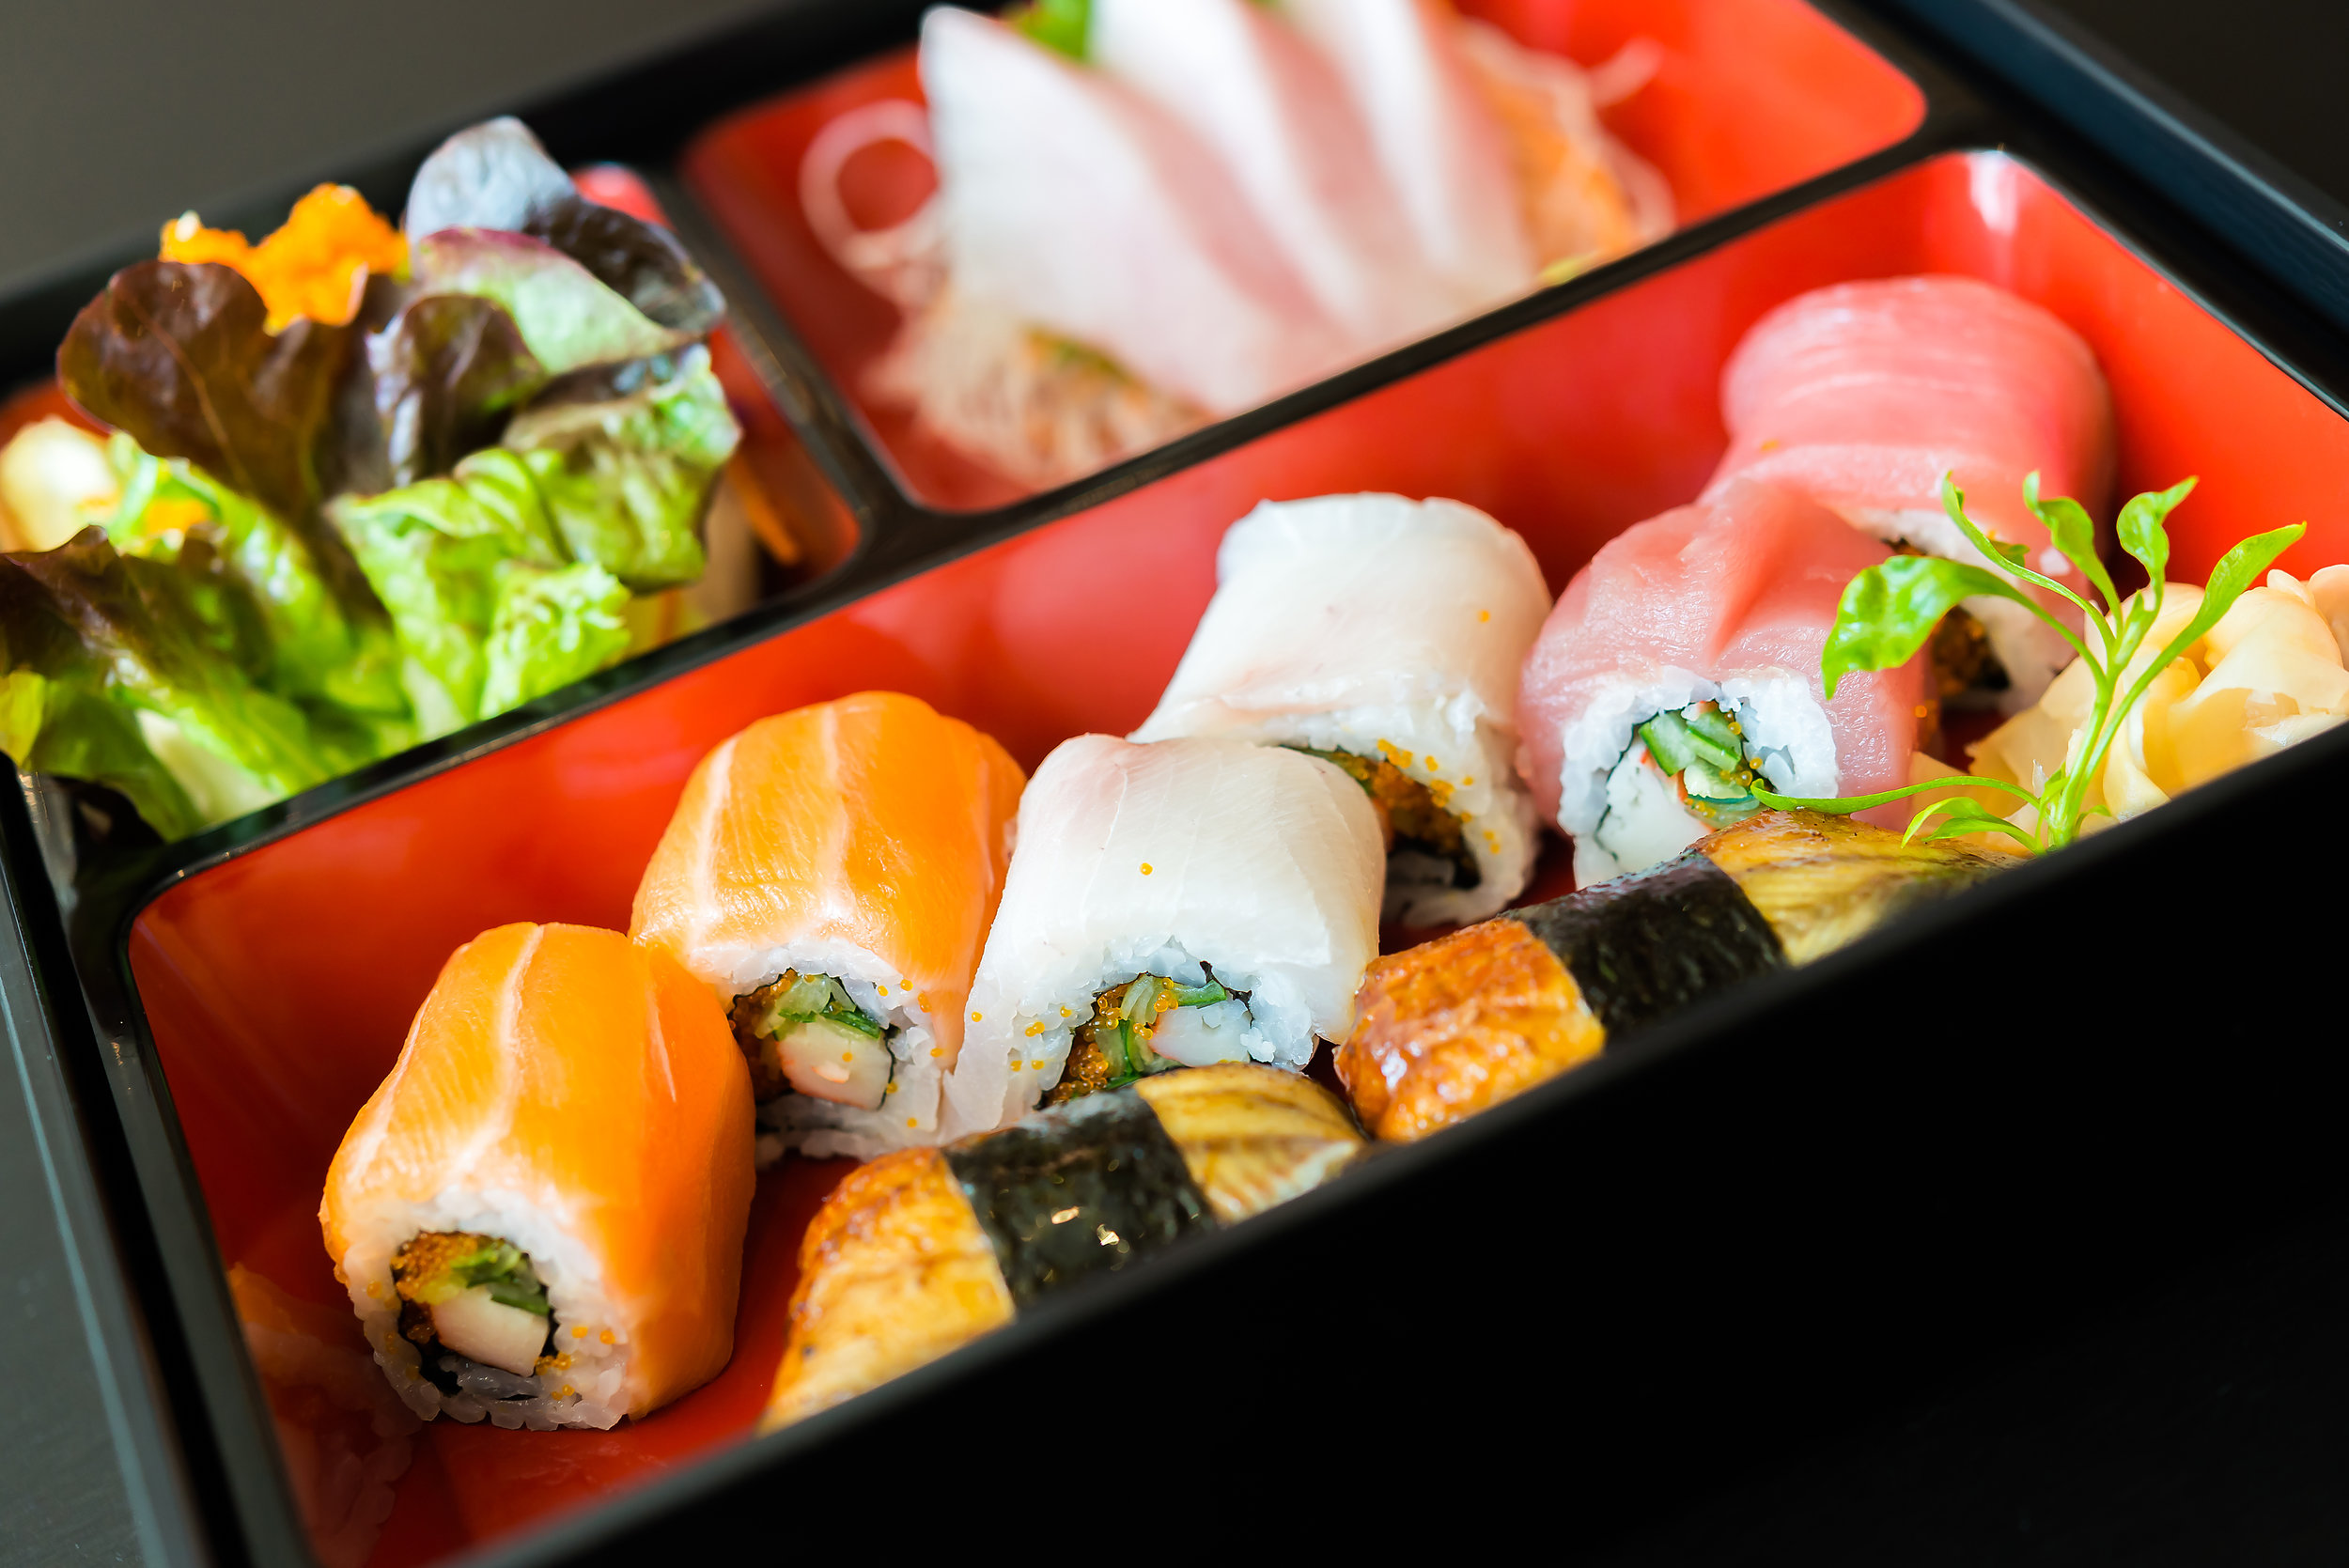 Source: http://www.freepik.com/free-photo/sushi-roll_1030800.htm#term=japanese%20food&page=1&position=10#term=japanese%20food&page=1&position=10